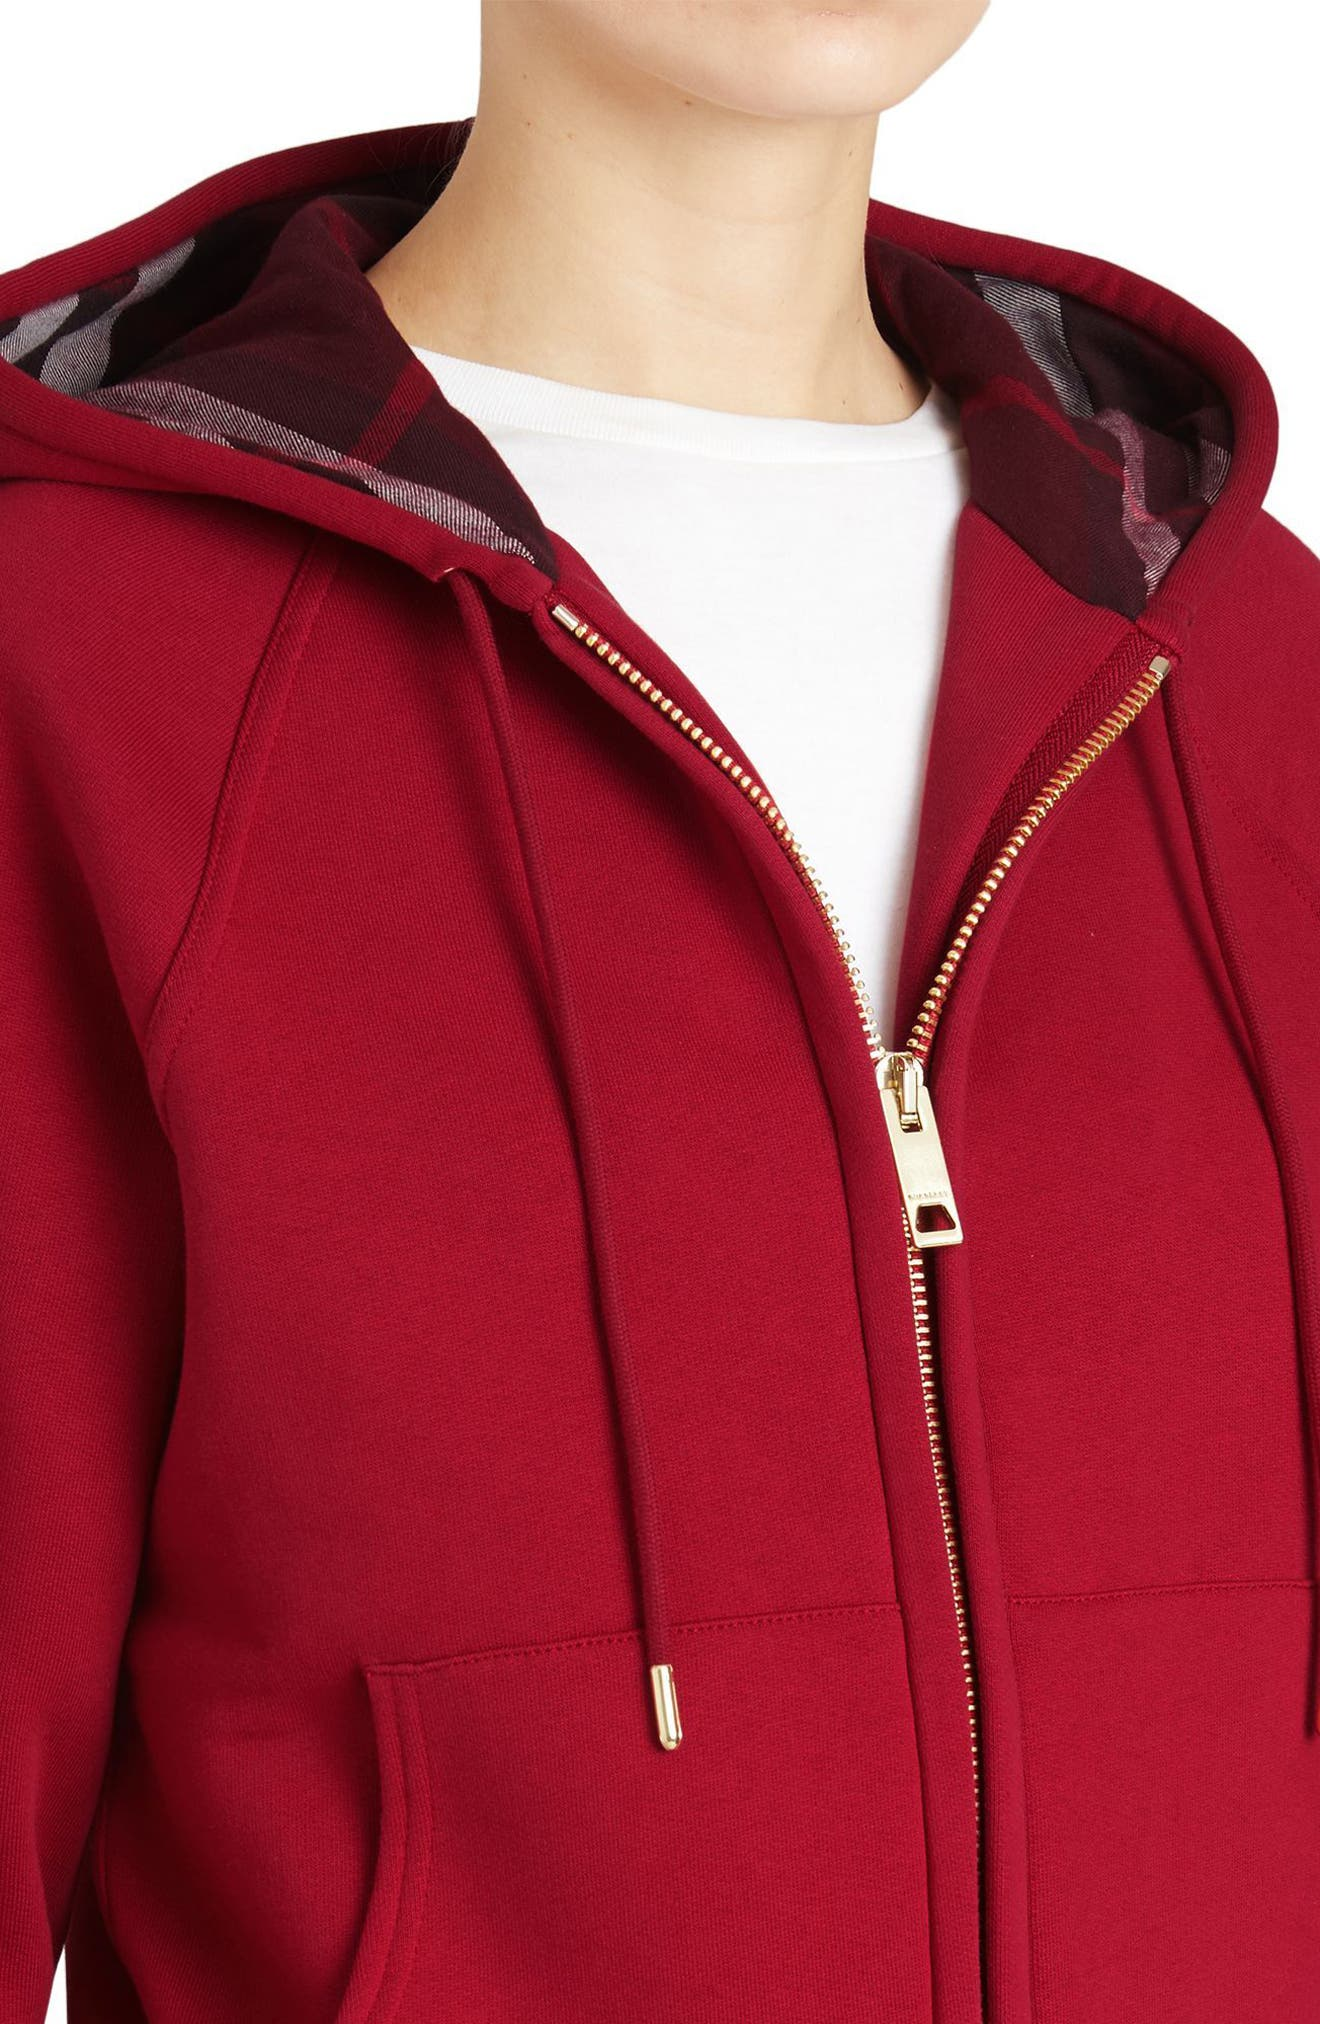 Check Print Hoodie,                             Alternate thumbnail 4, color,                             PARADE RED